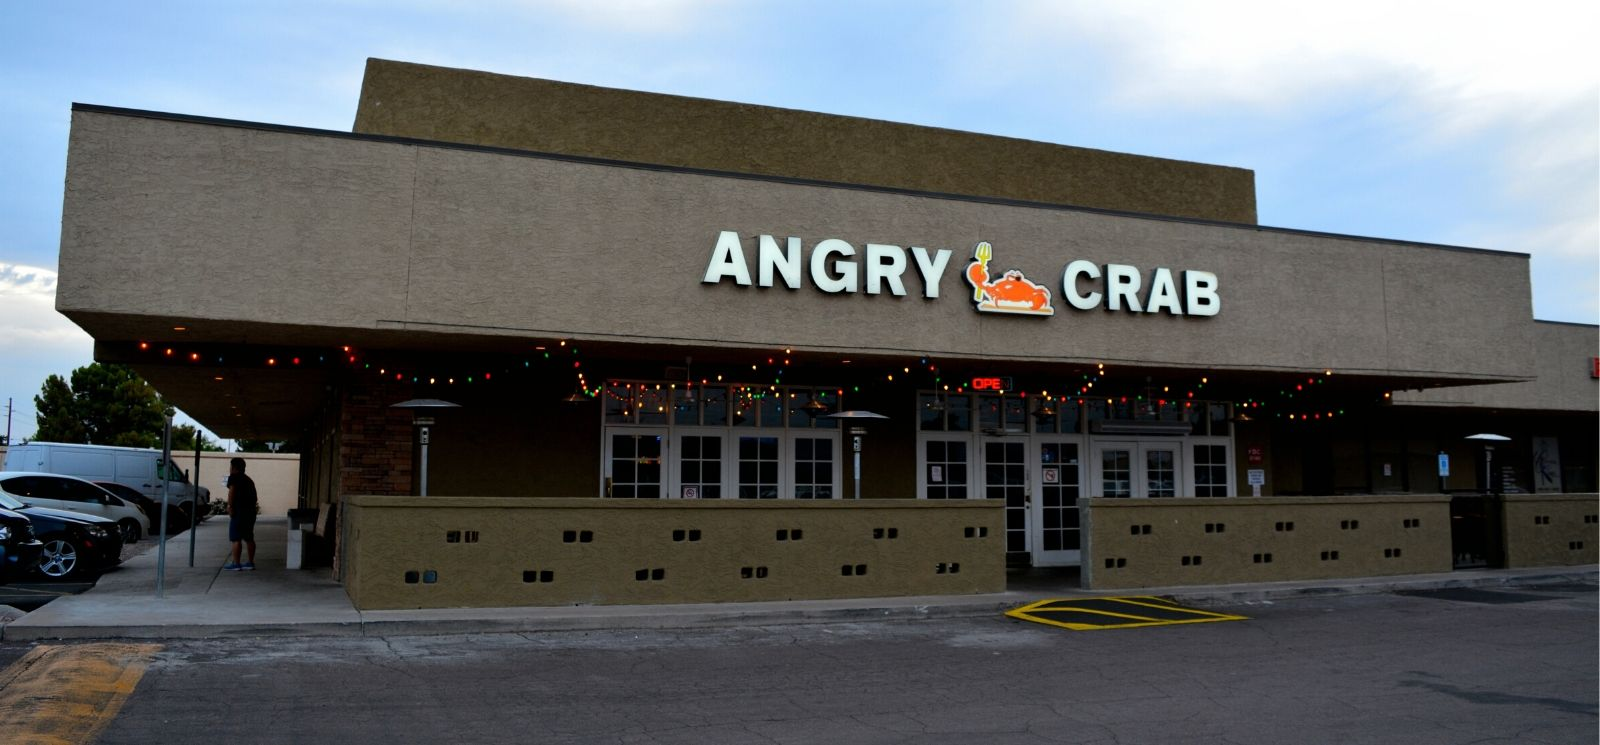 4 Things We Look for in an Angry Crab Shack Franchise Owner